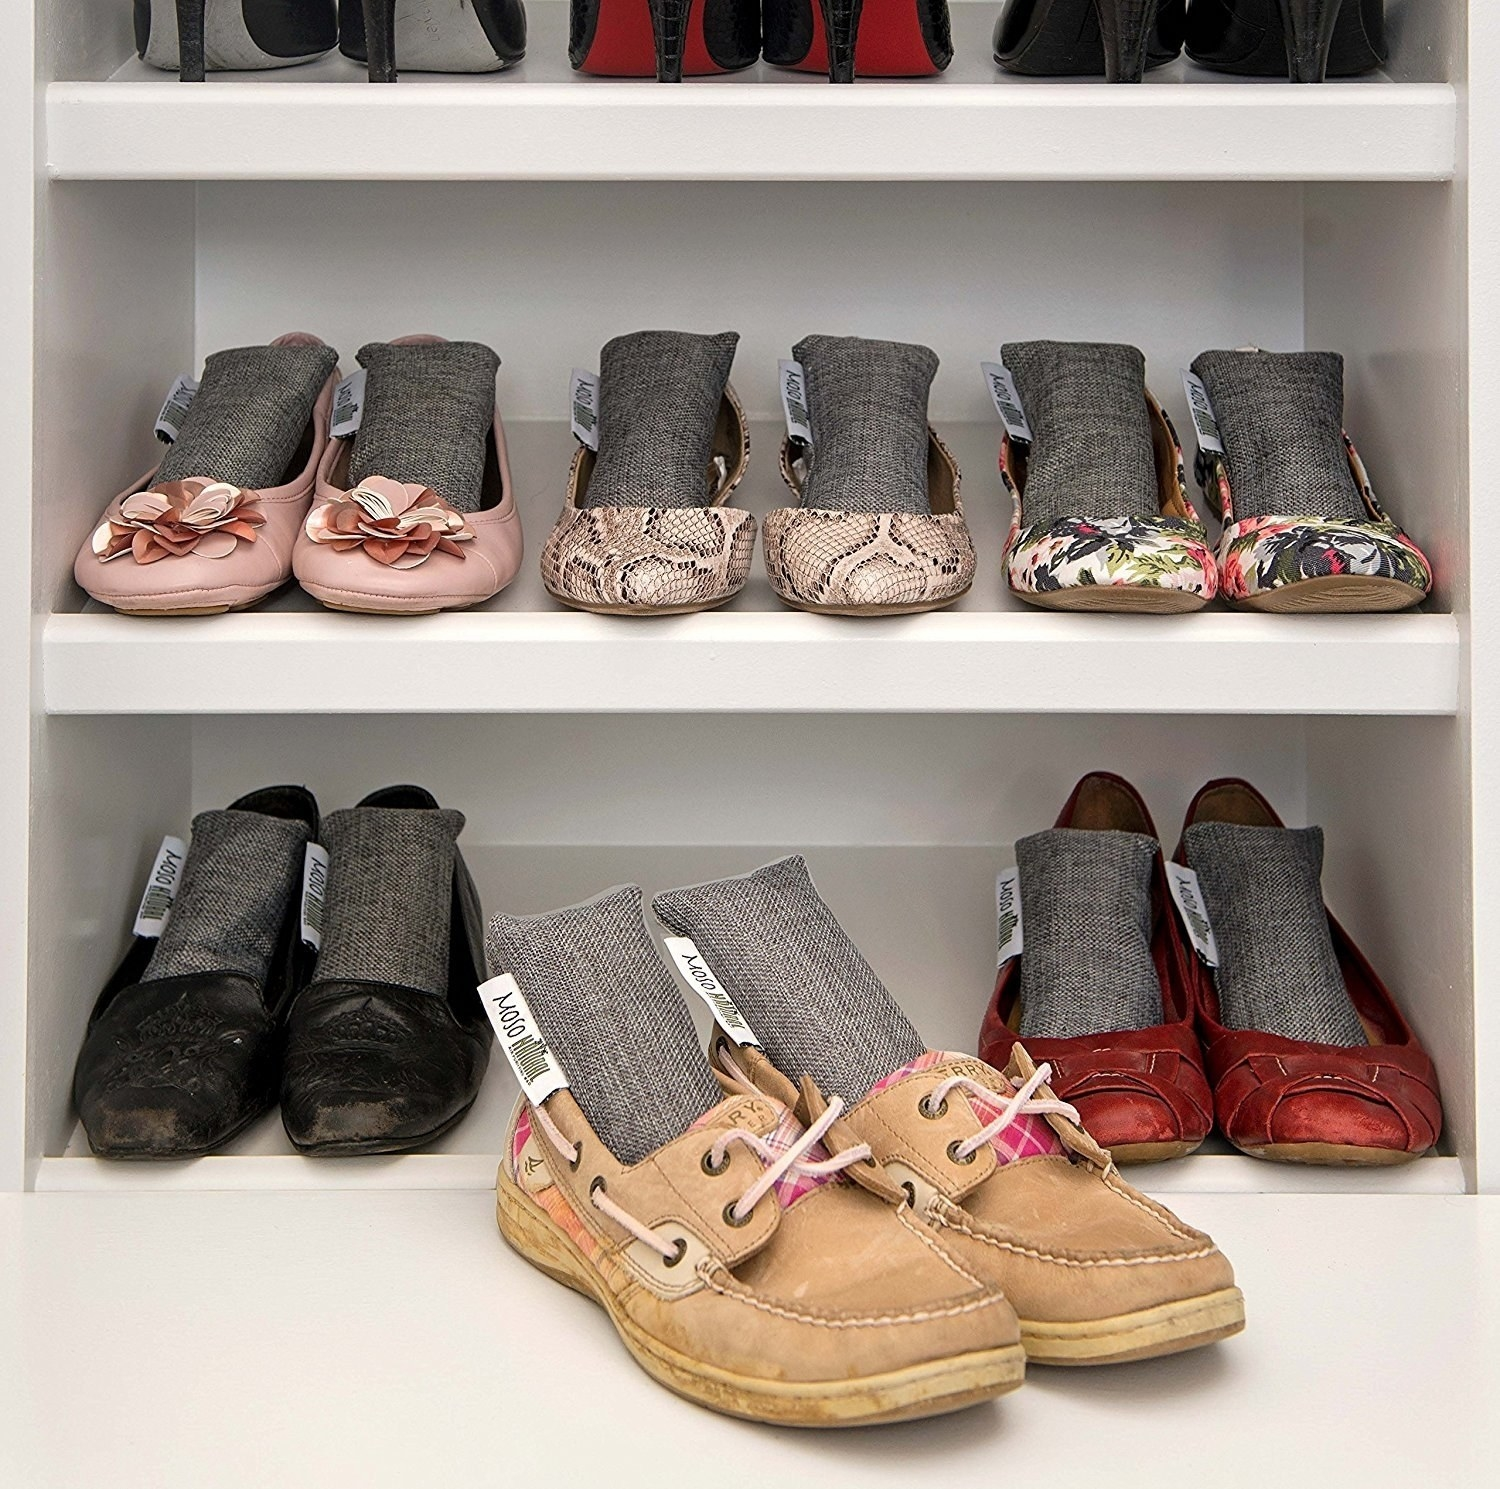 shelves of shoes with deodorizers in them